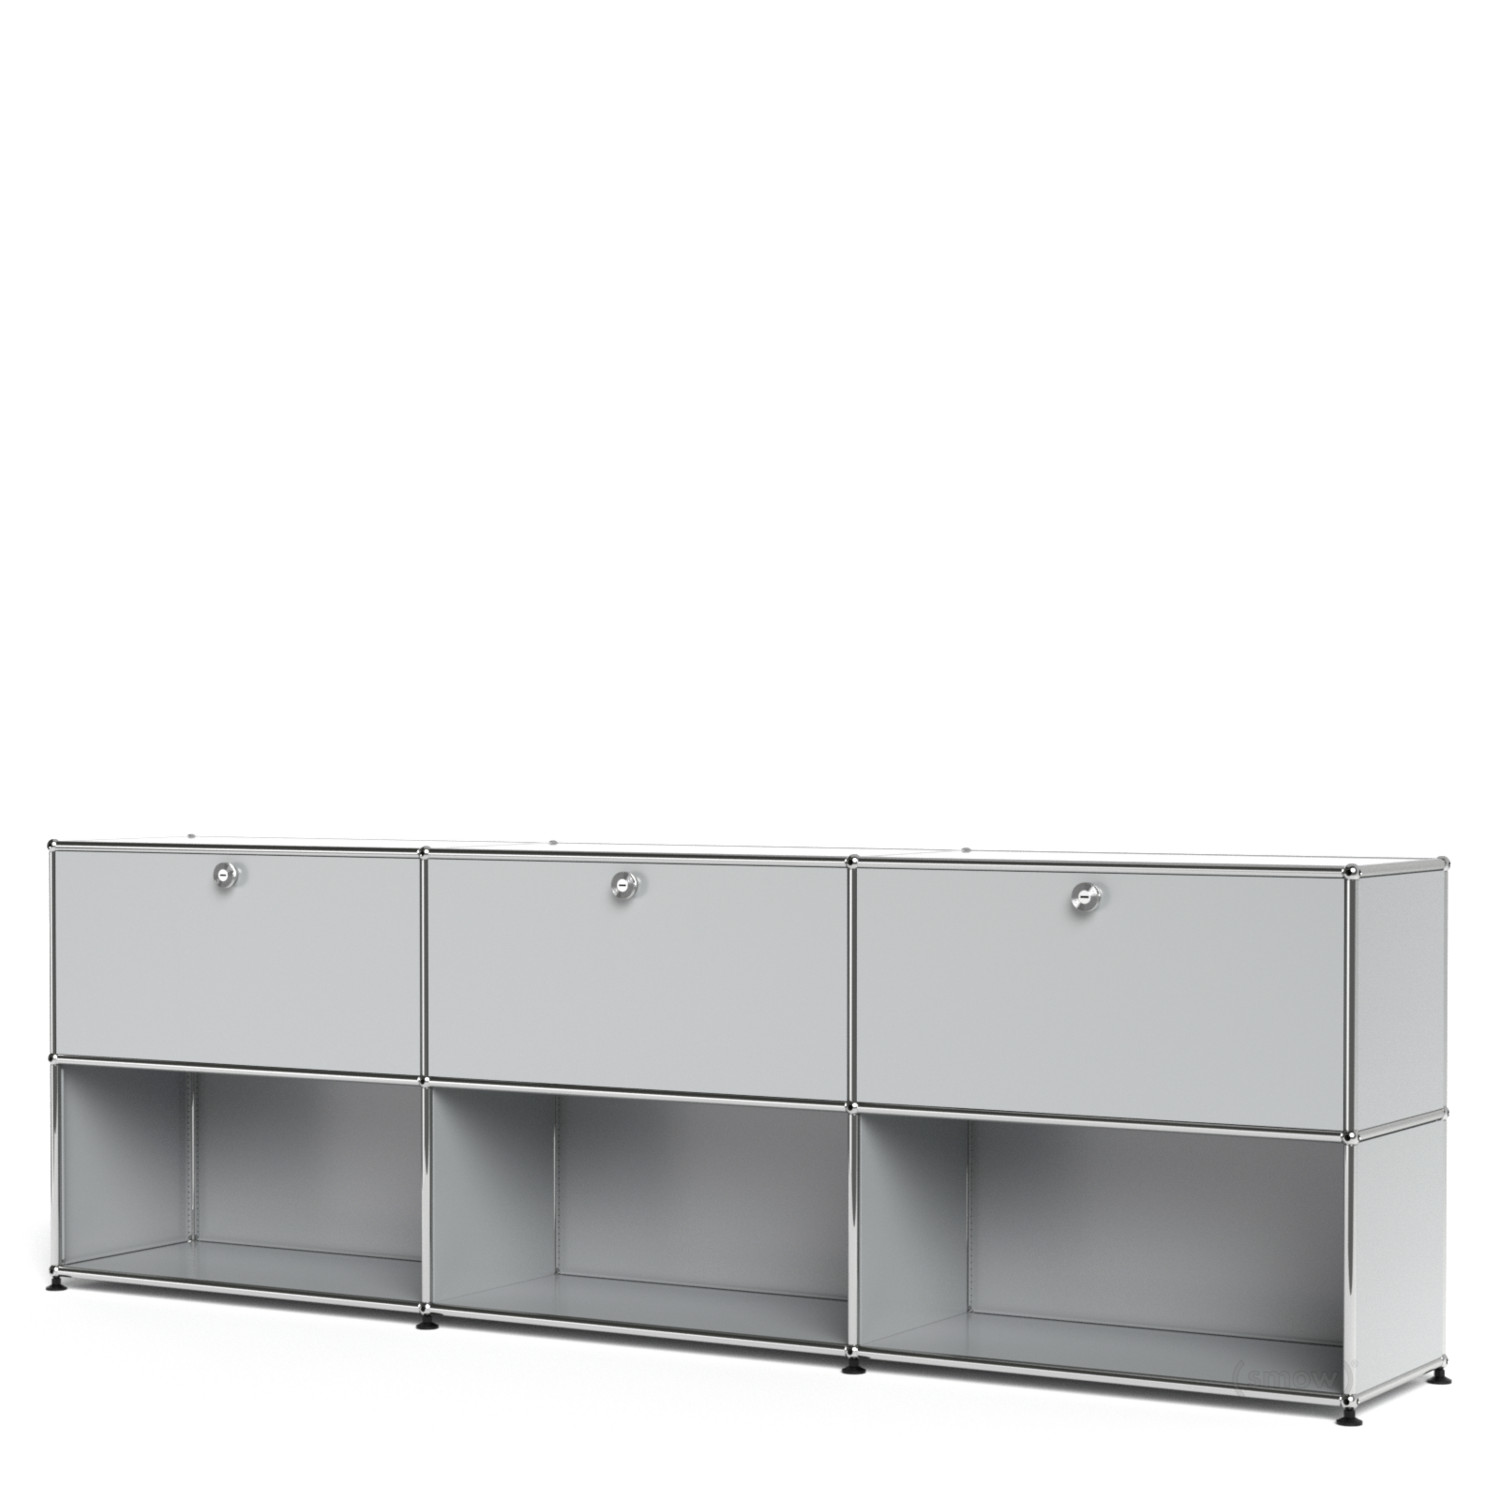 Usm haller sideboard xl customisable light grey ral 7035 for Sideboard usm